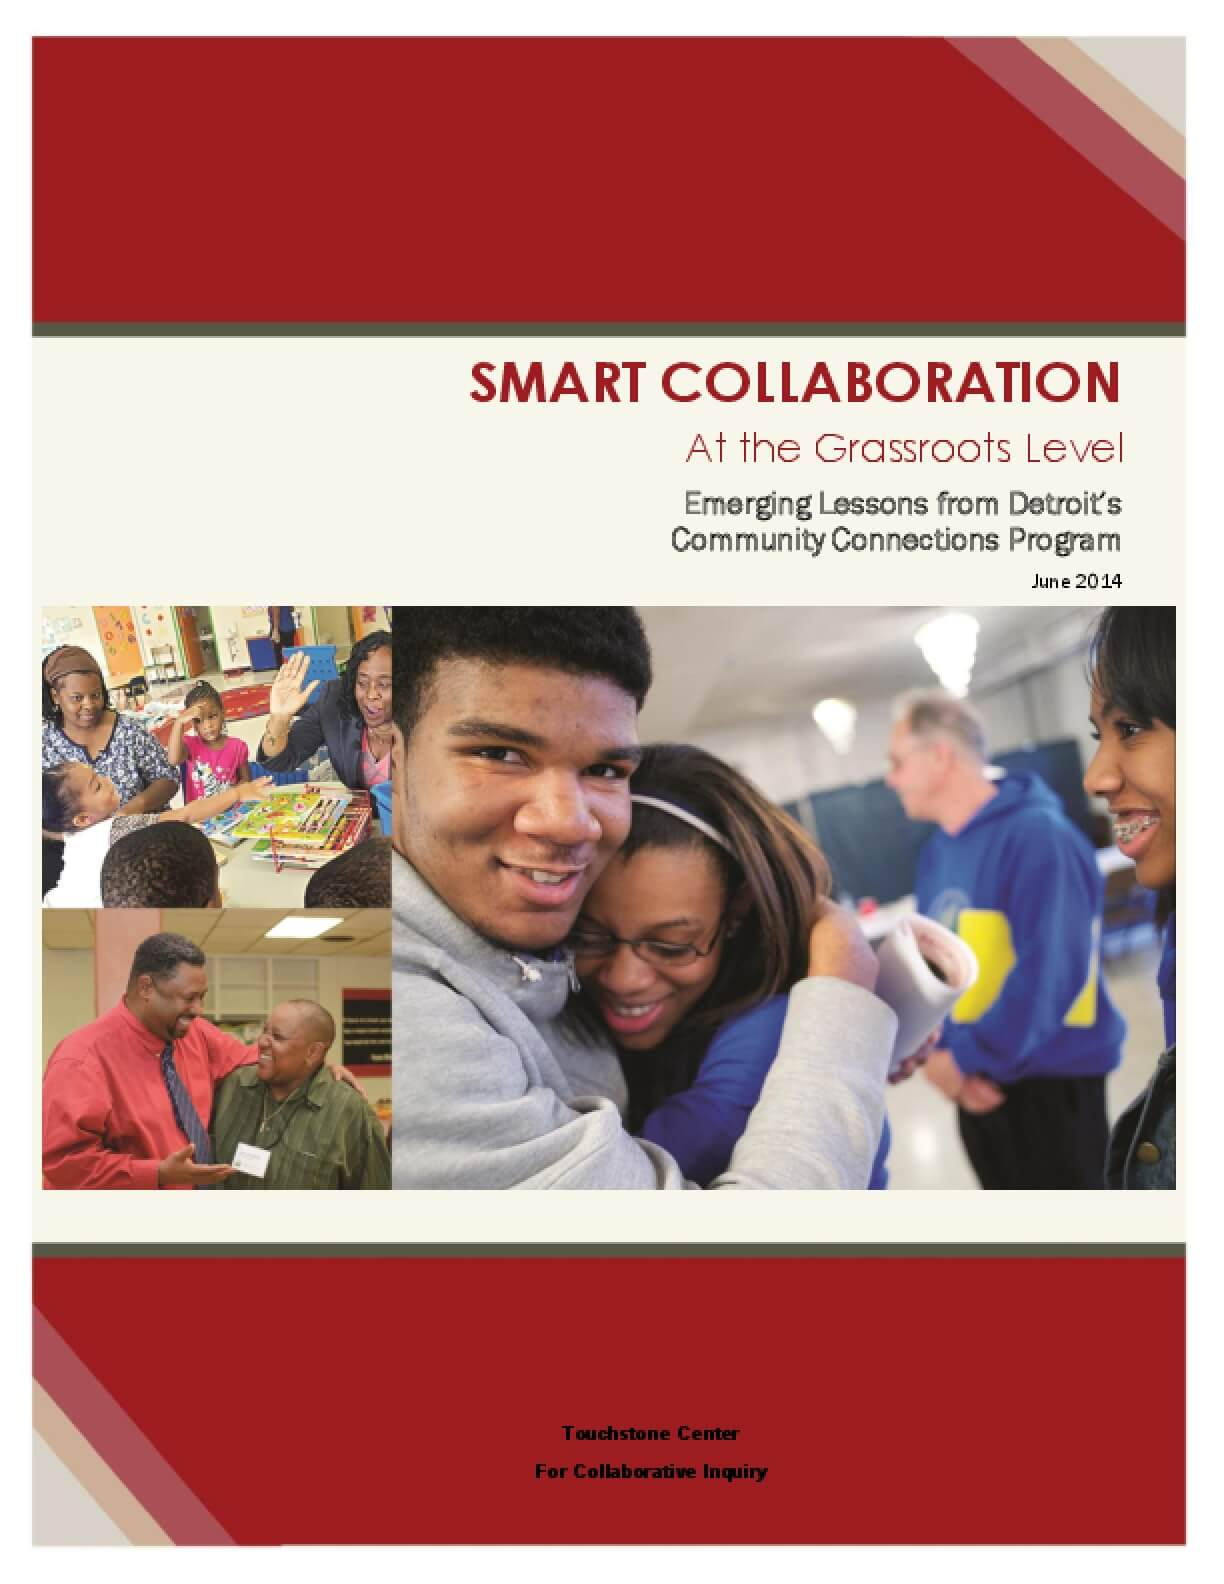 Smart Collaboration At the Grassroots Level: Emerging Lessons from Detroit's Community Connections Program